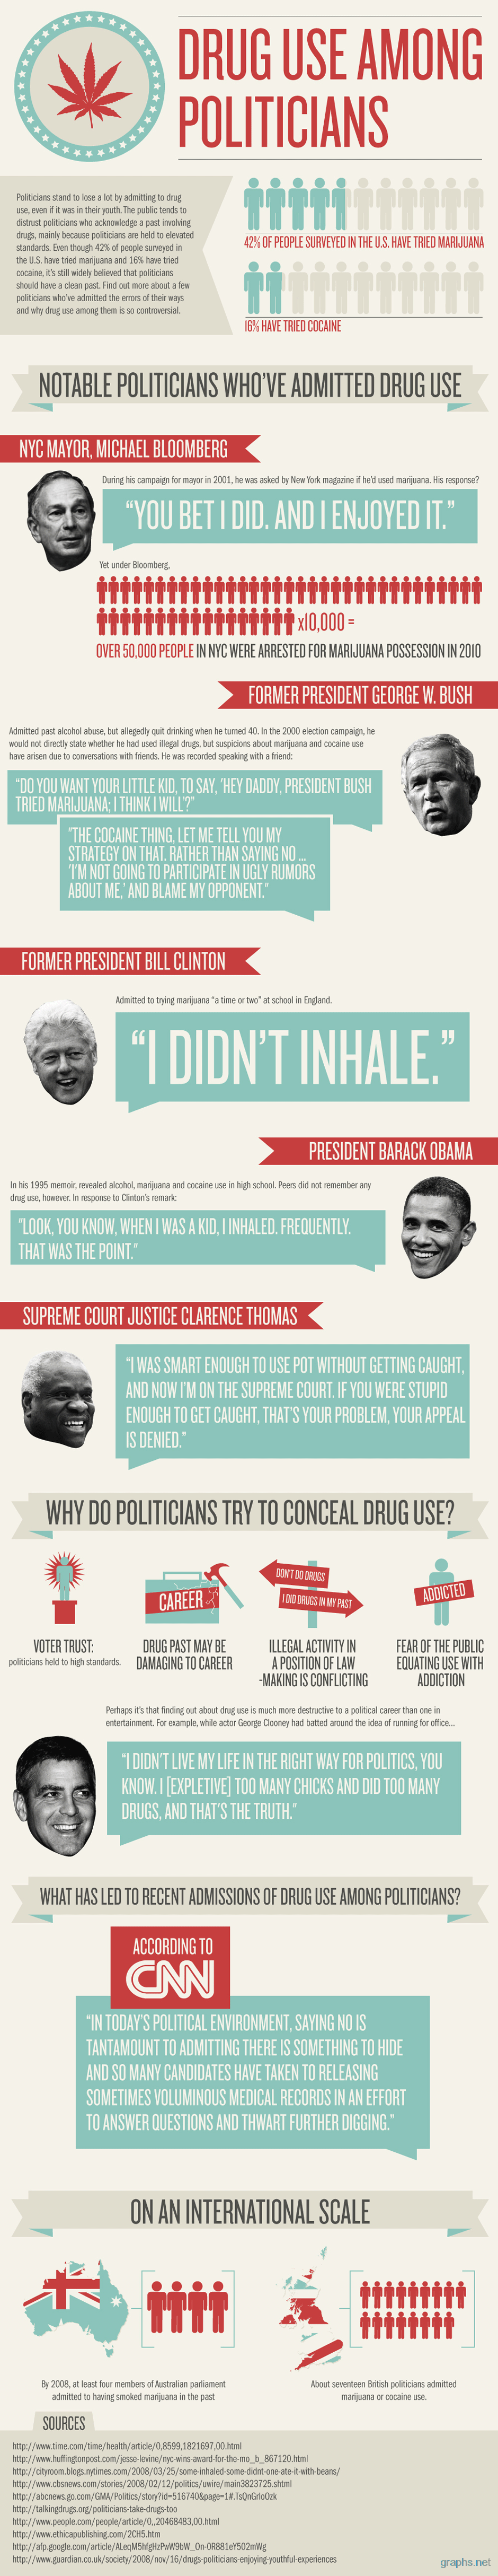 drug use among presidents